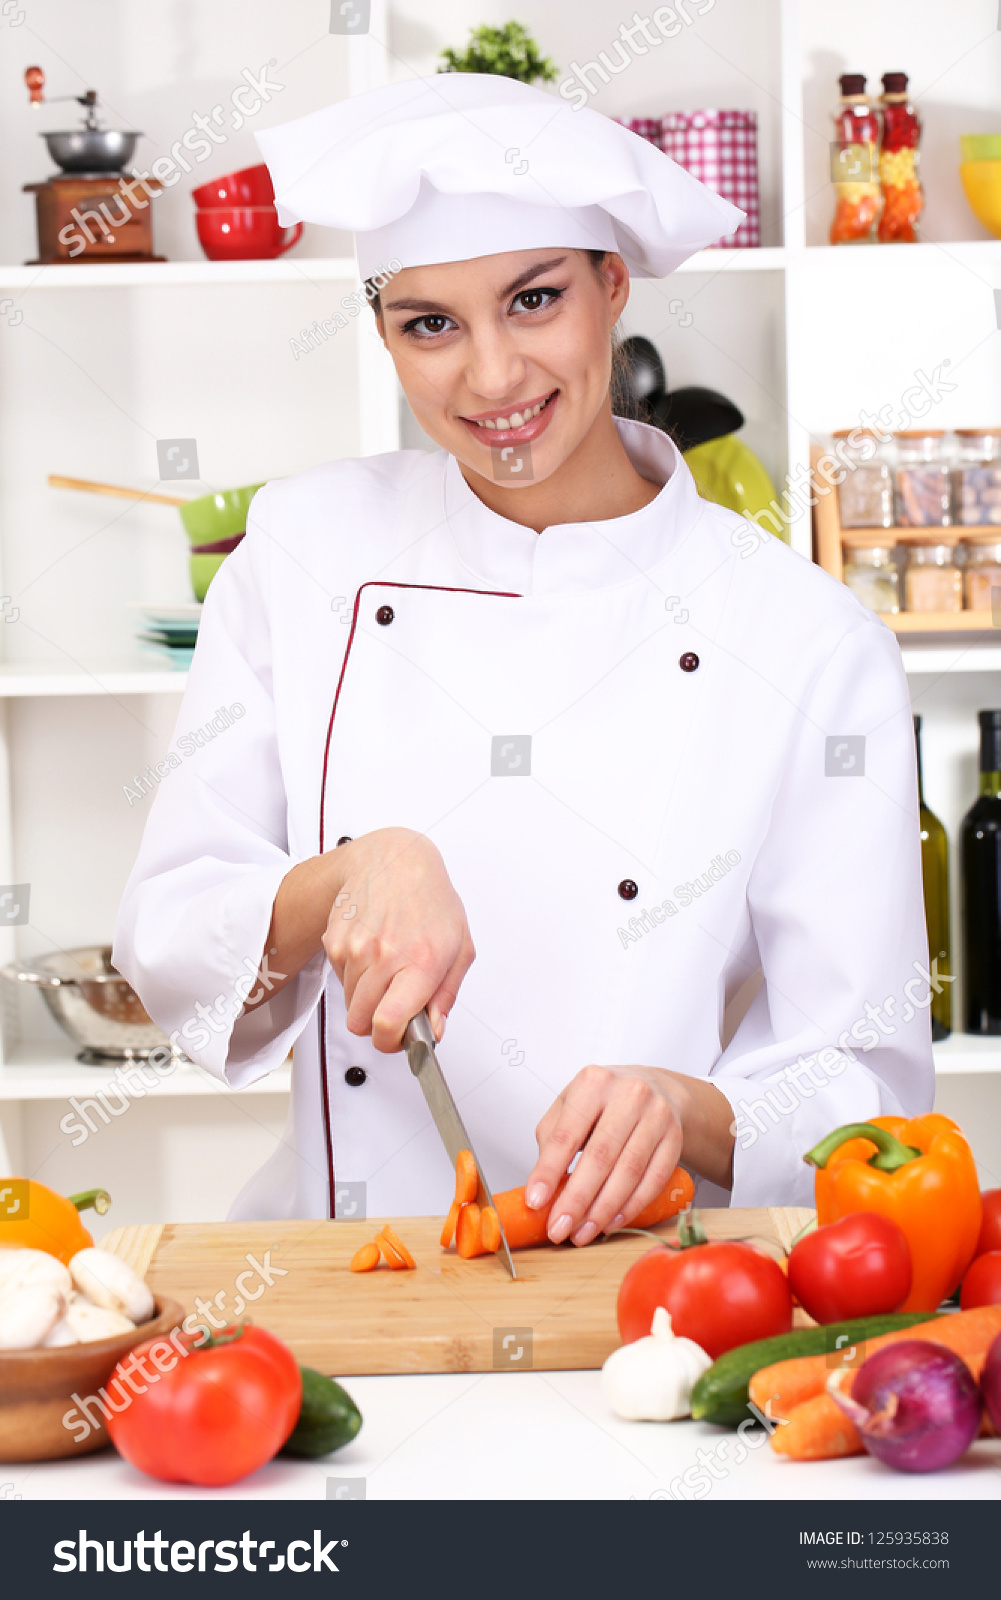 stock-photo-young-woman-chef-cooking-in-kitchen-125935838.jpg